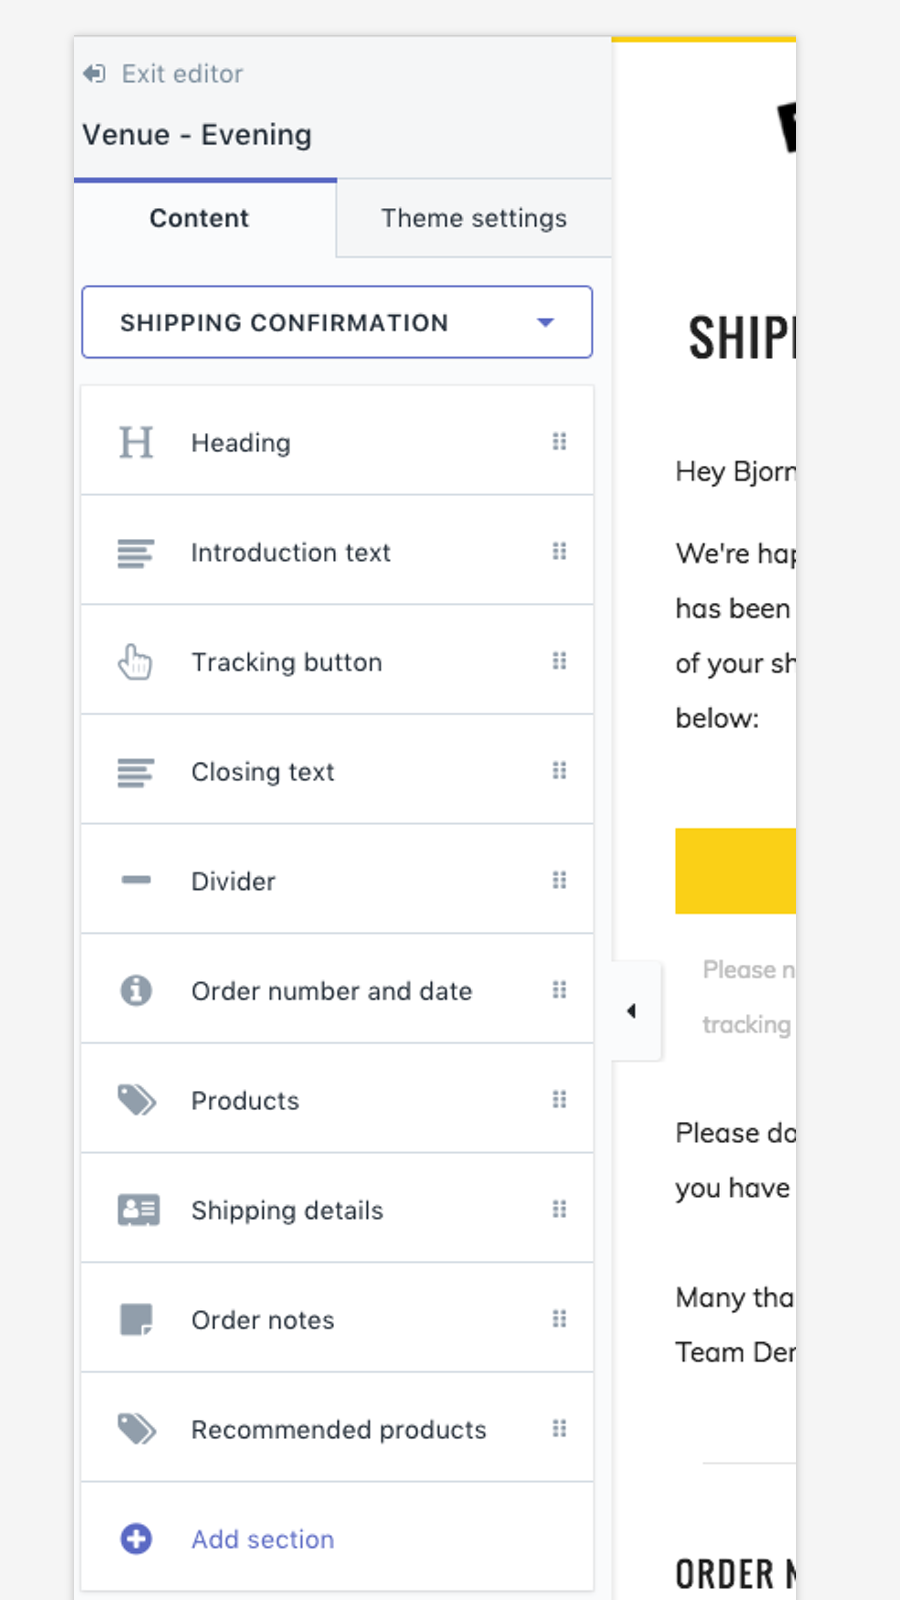 Email templates for Shopify notifications, mobile add sections